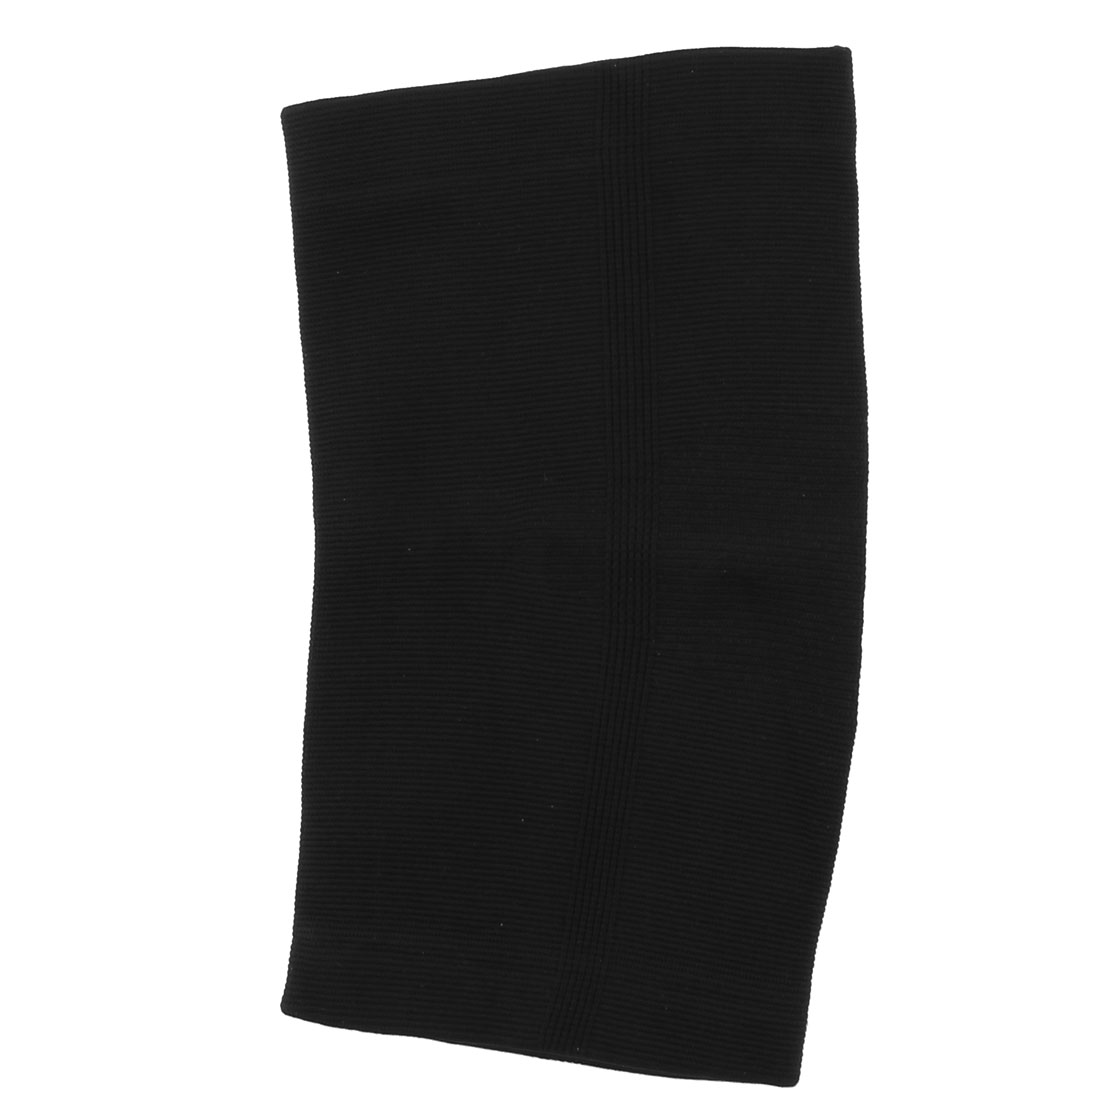 Outdoor Sport Spandex Stretch Leg Support Brace Pad Wrap Band Protector Black for Athlete